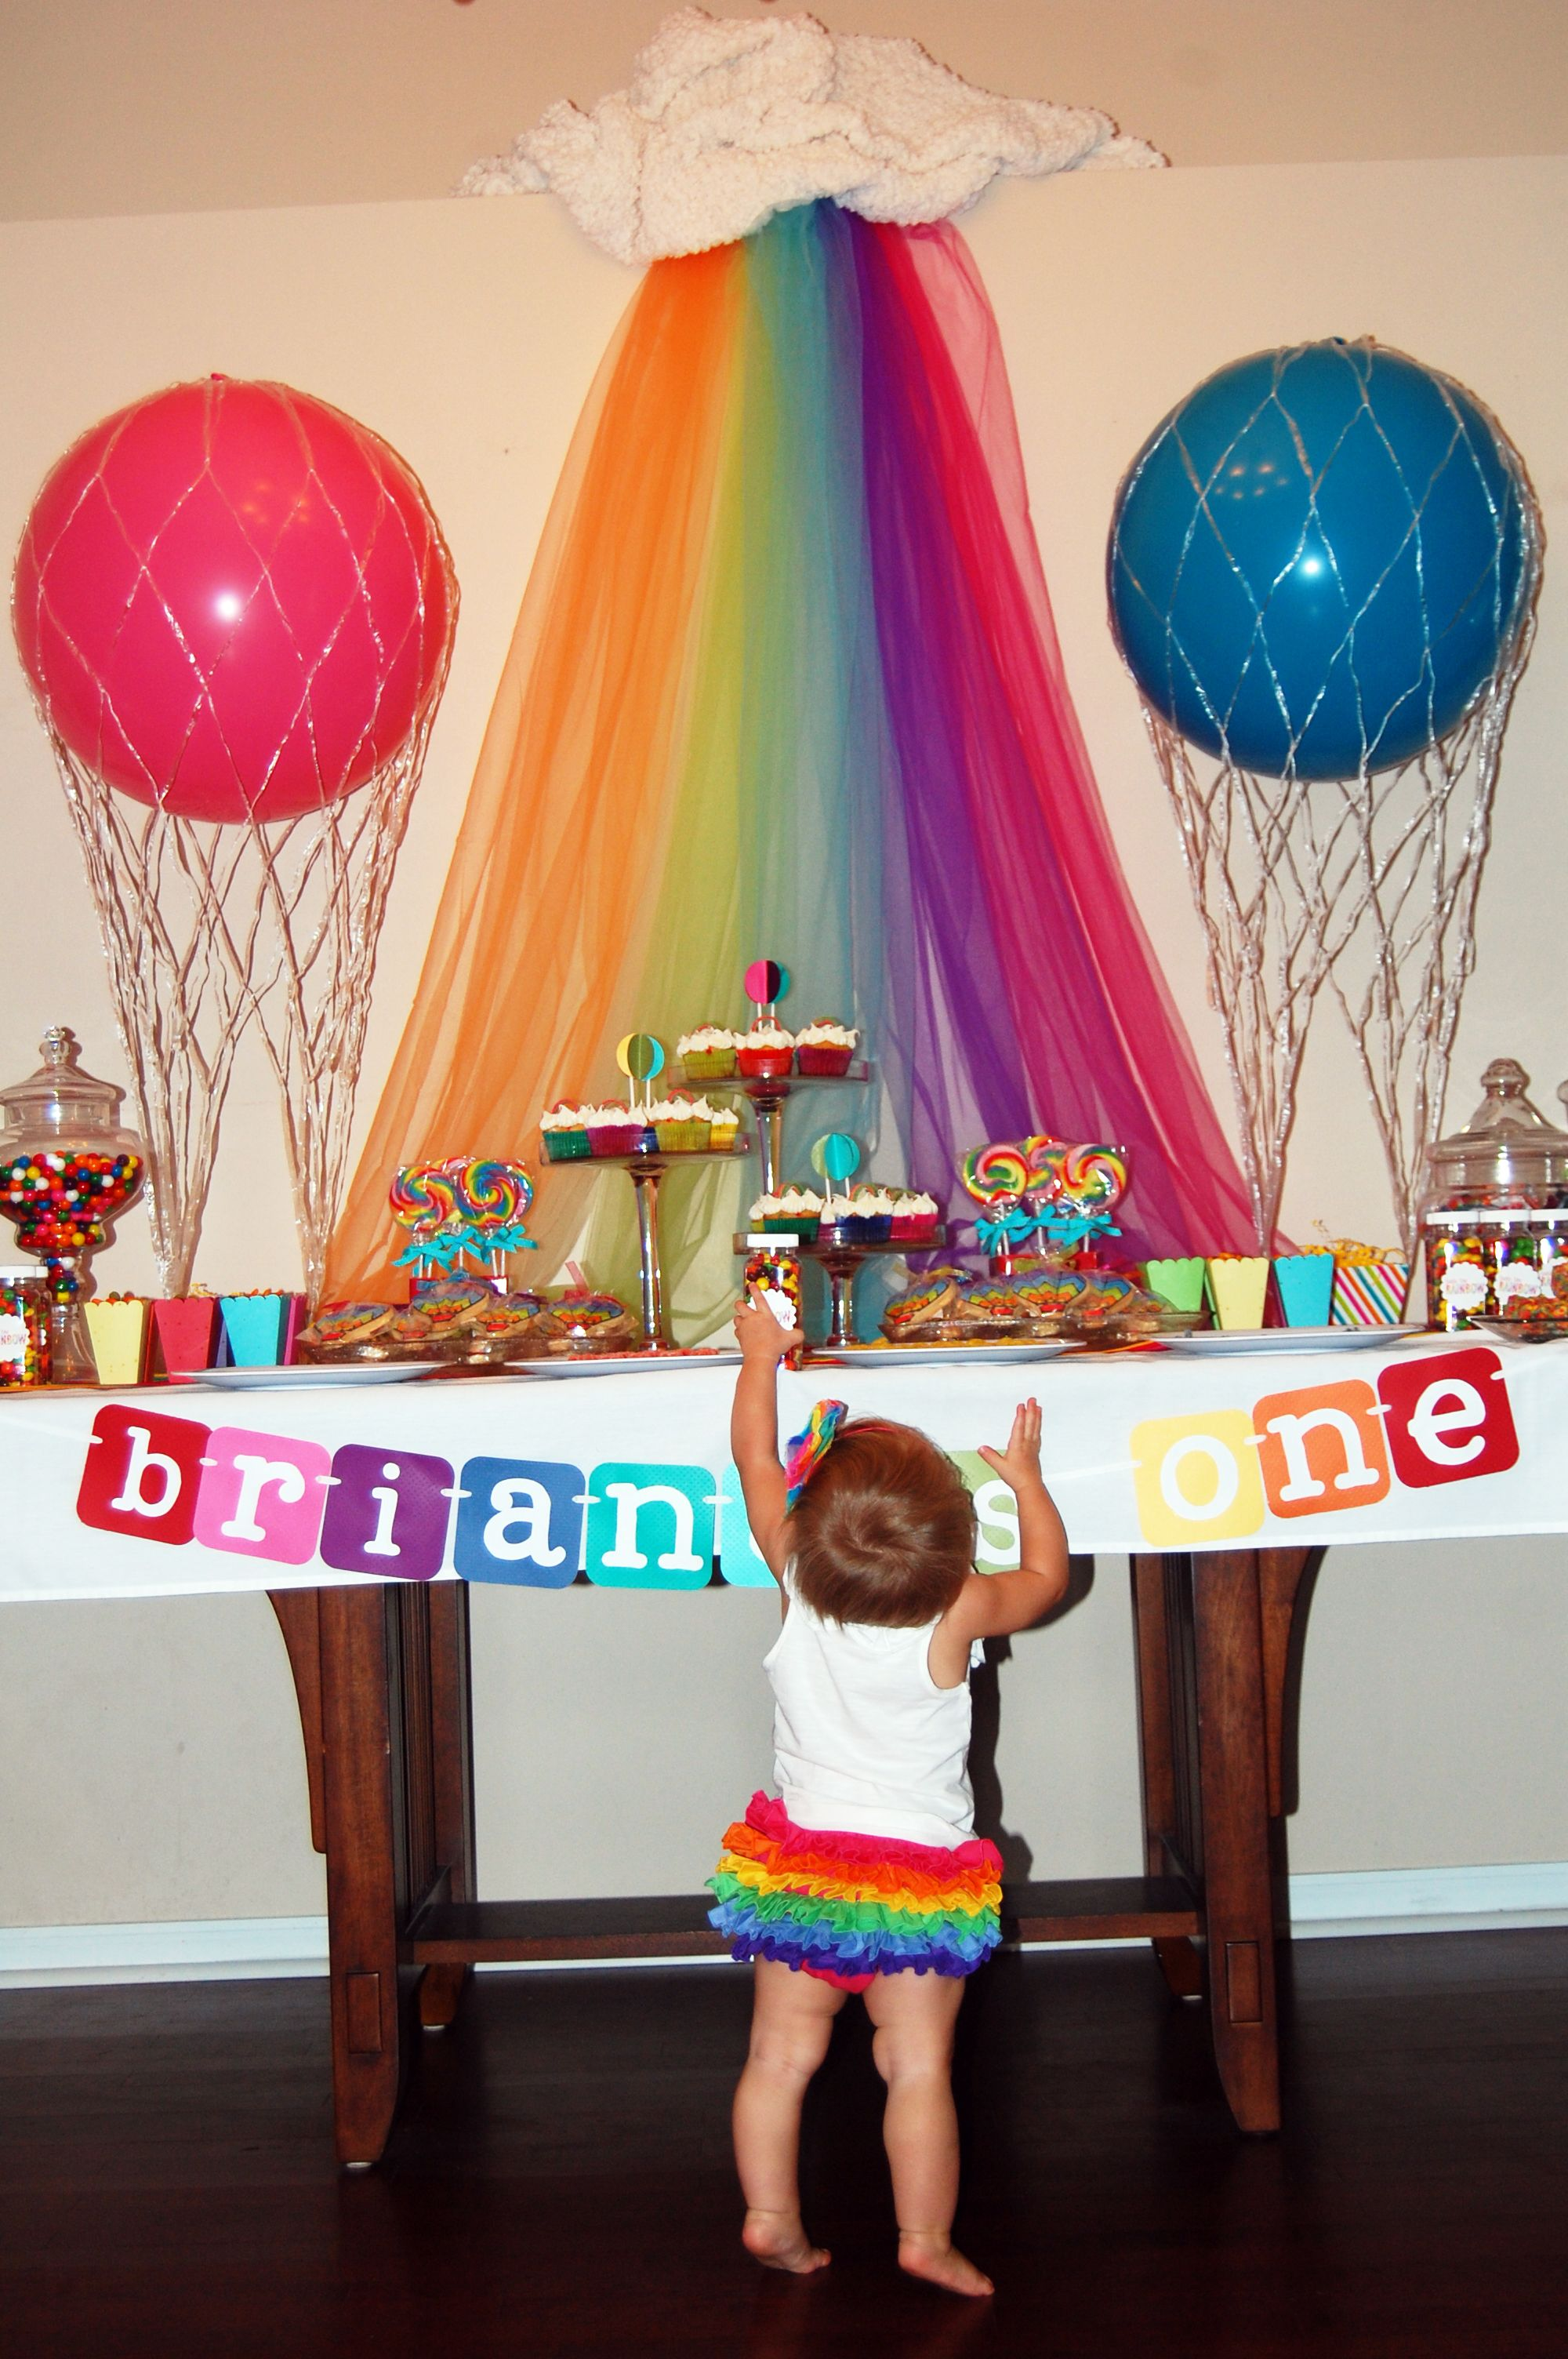 Rainbow Hot Air Balloon Themed Birthday Partyhmm Thinking Of Changing